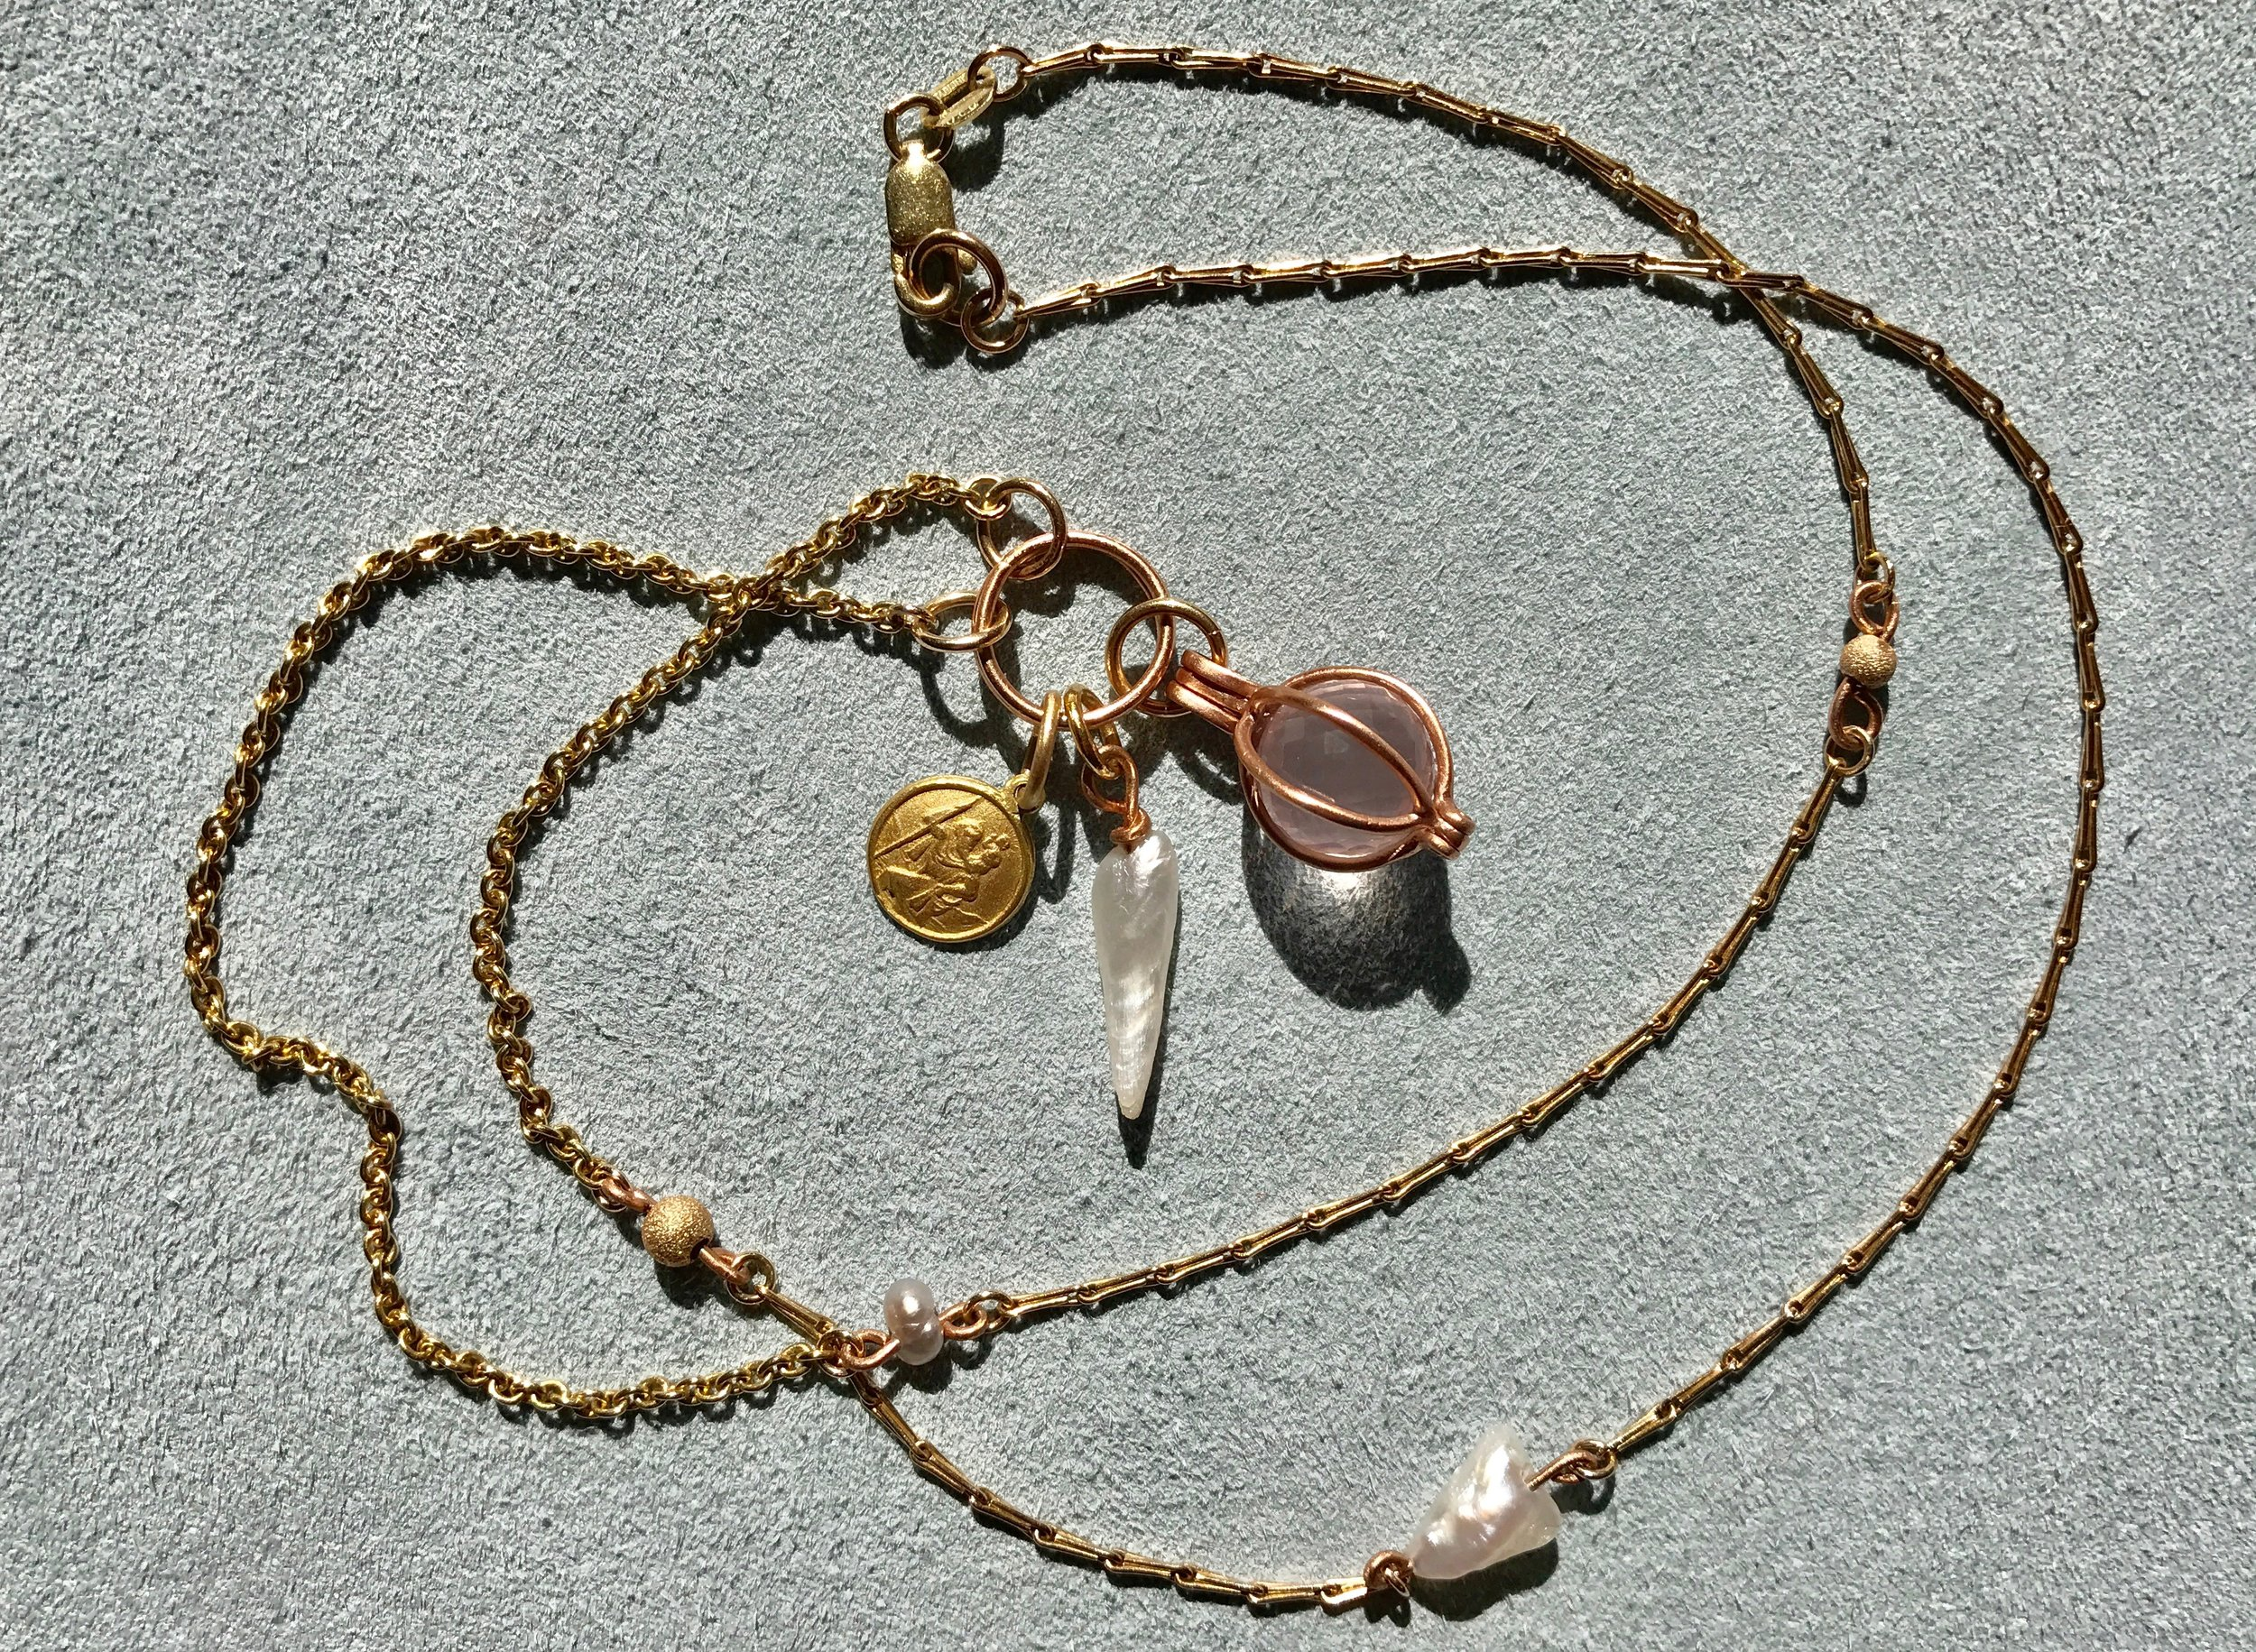 Co-Creation mixed chain, rose quartz, Mississippi pearl, St Christopher necklace by Tara Turner fine jewellery 2.jpg